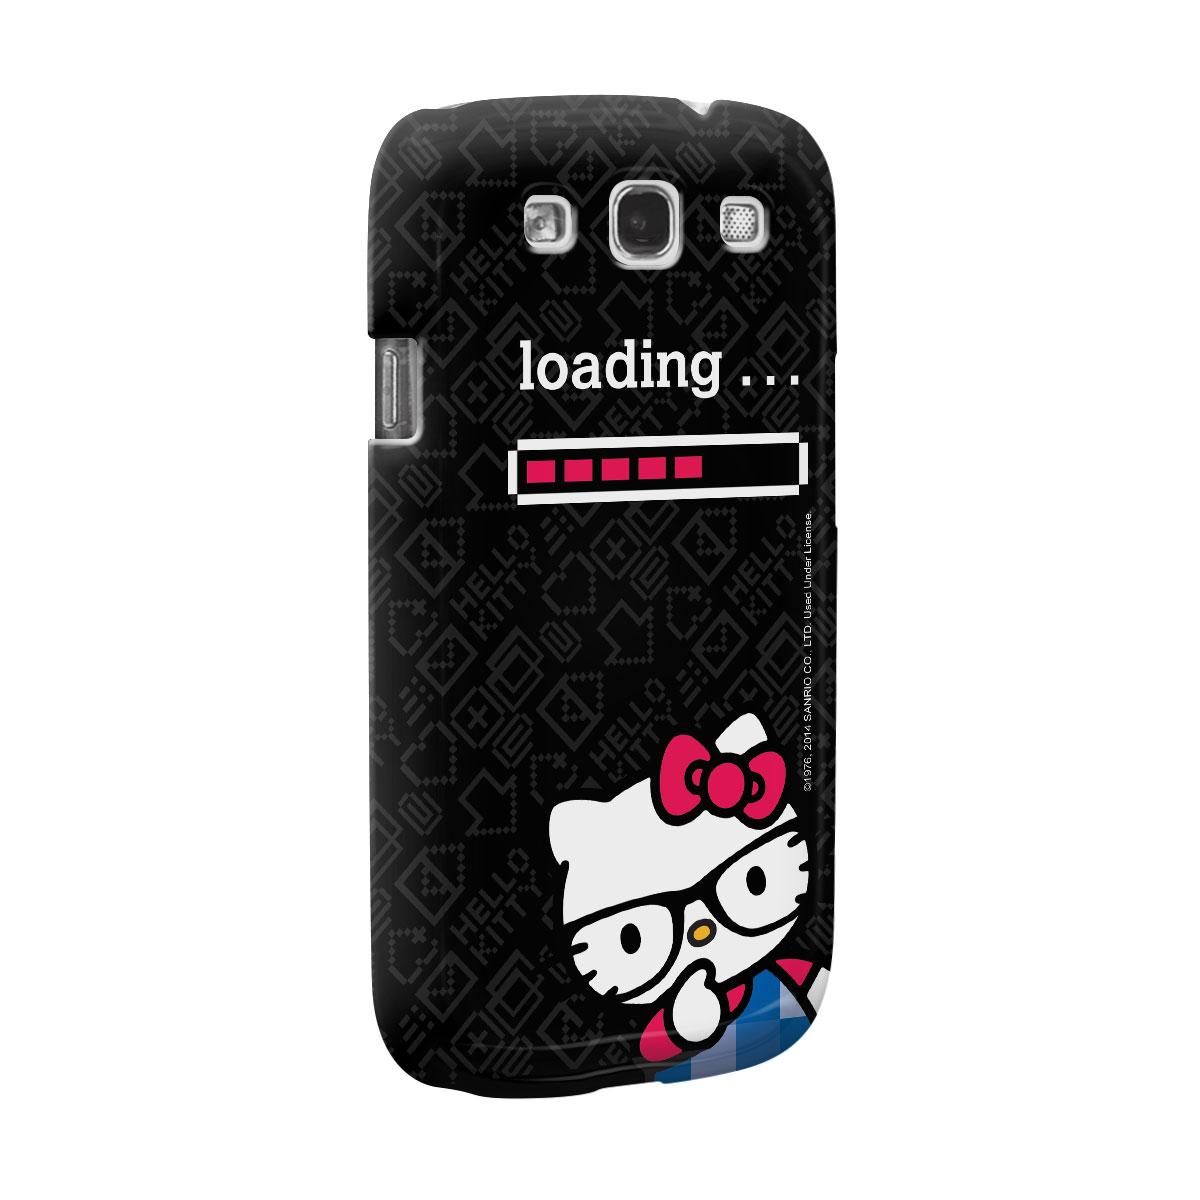 Capa de Celular Samsung S3 Hello Kitty Loading